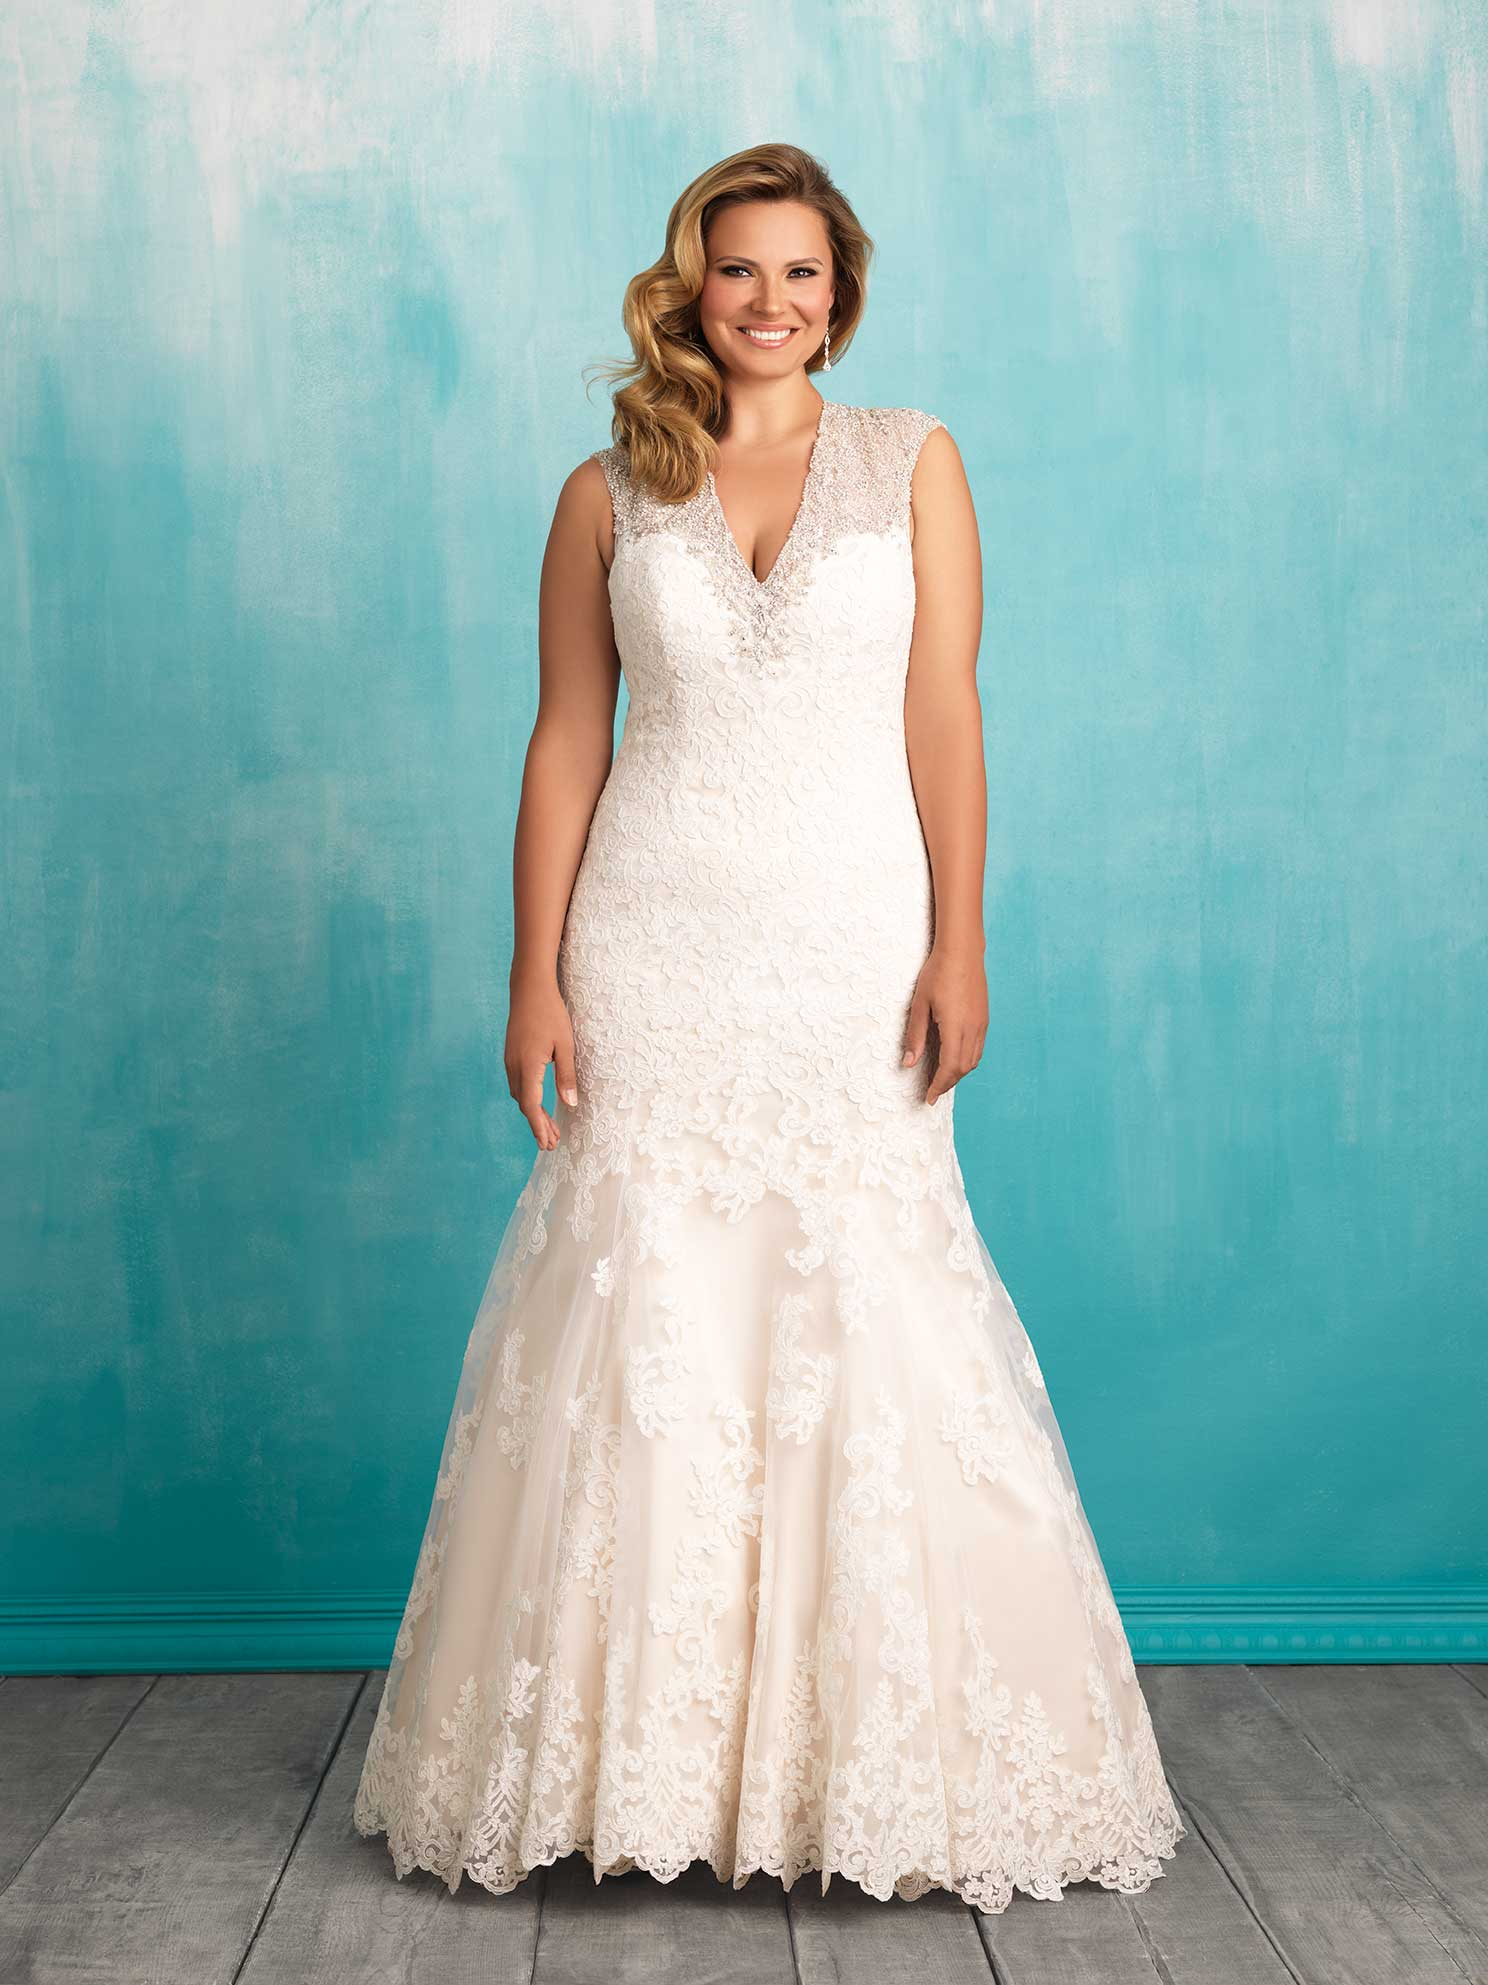 Molly\'s Bridal - Brides of North Texas